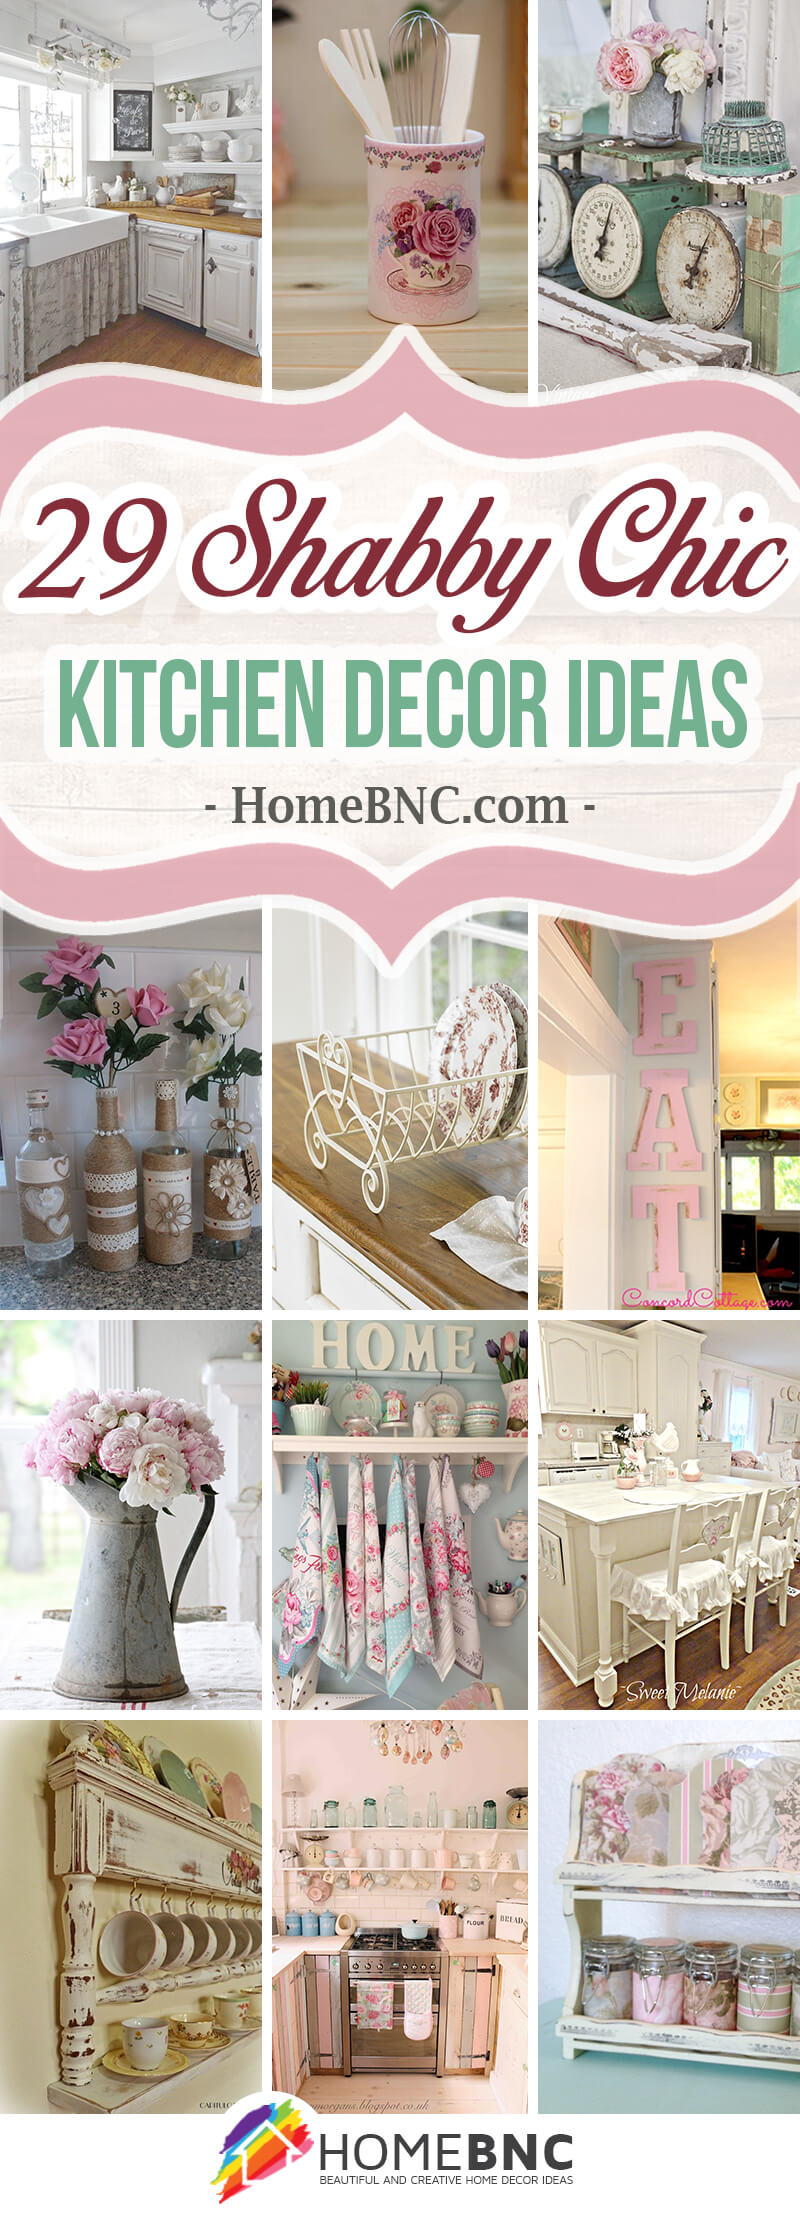 29 Gorgeous Shabby Chic Kitchen Decor Ideas For That Lived In Look